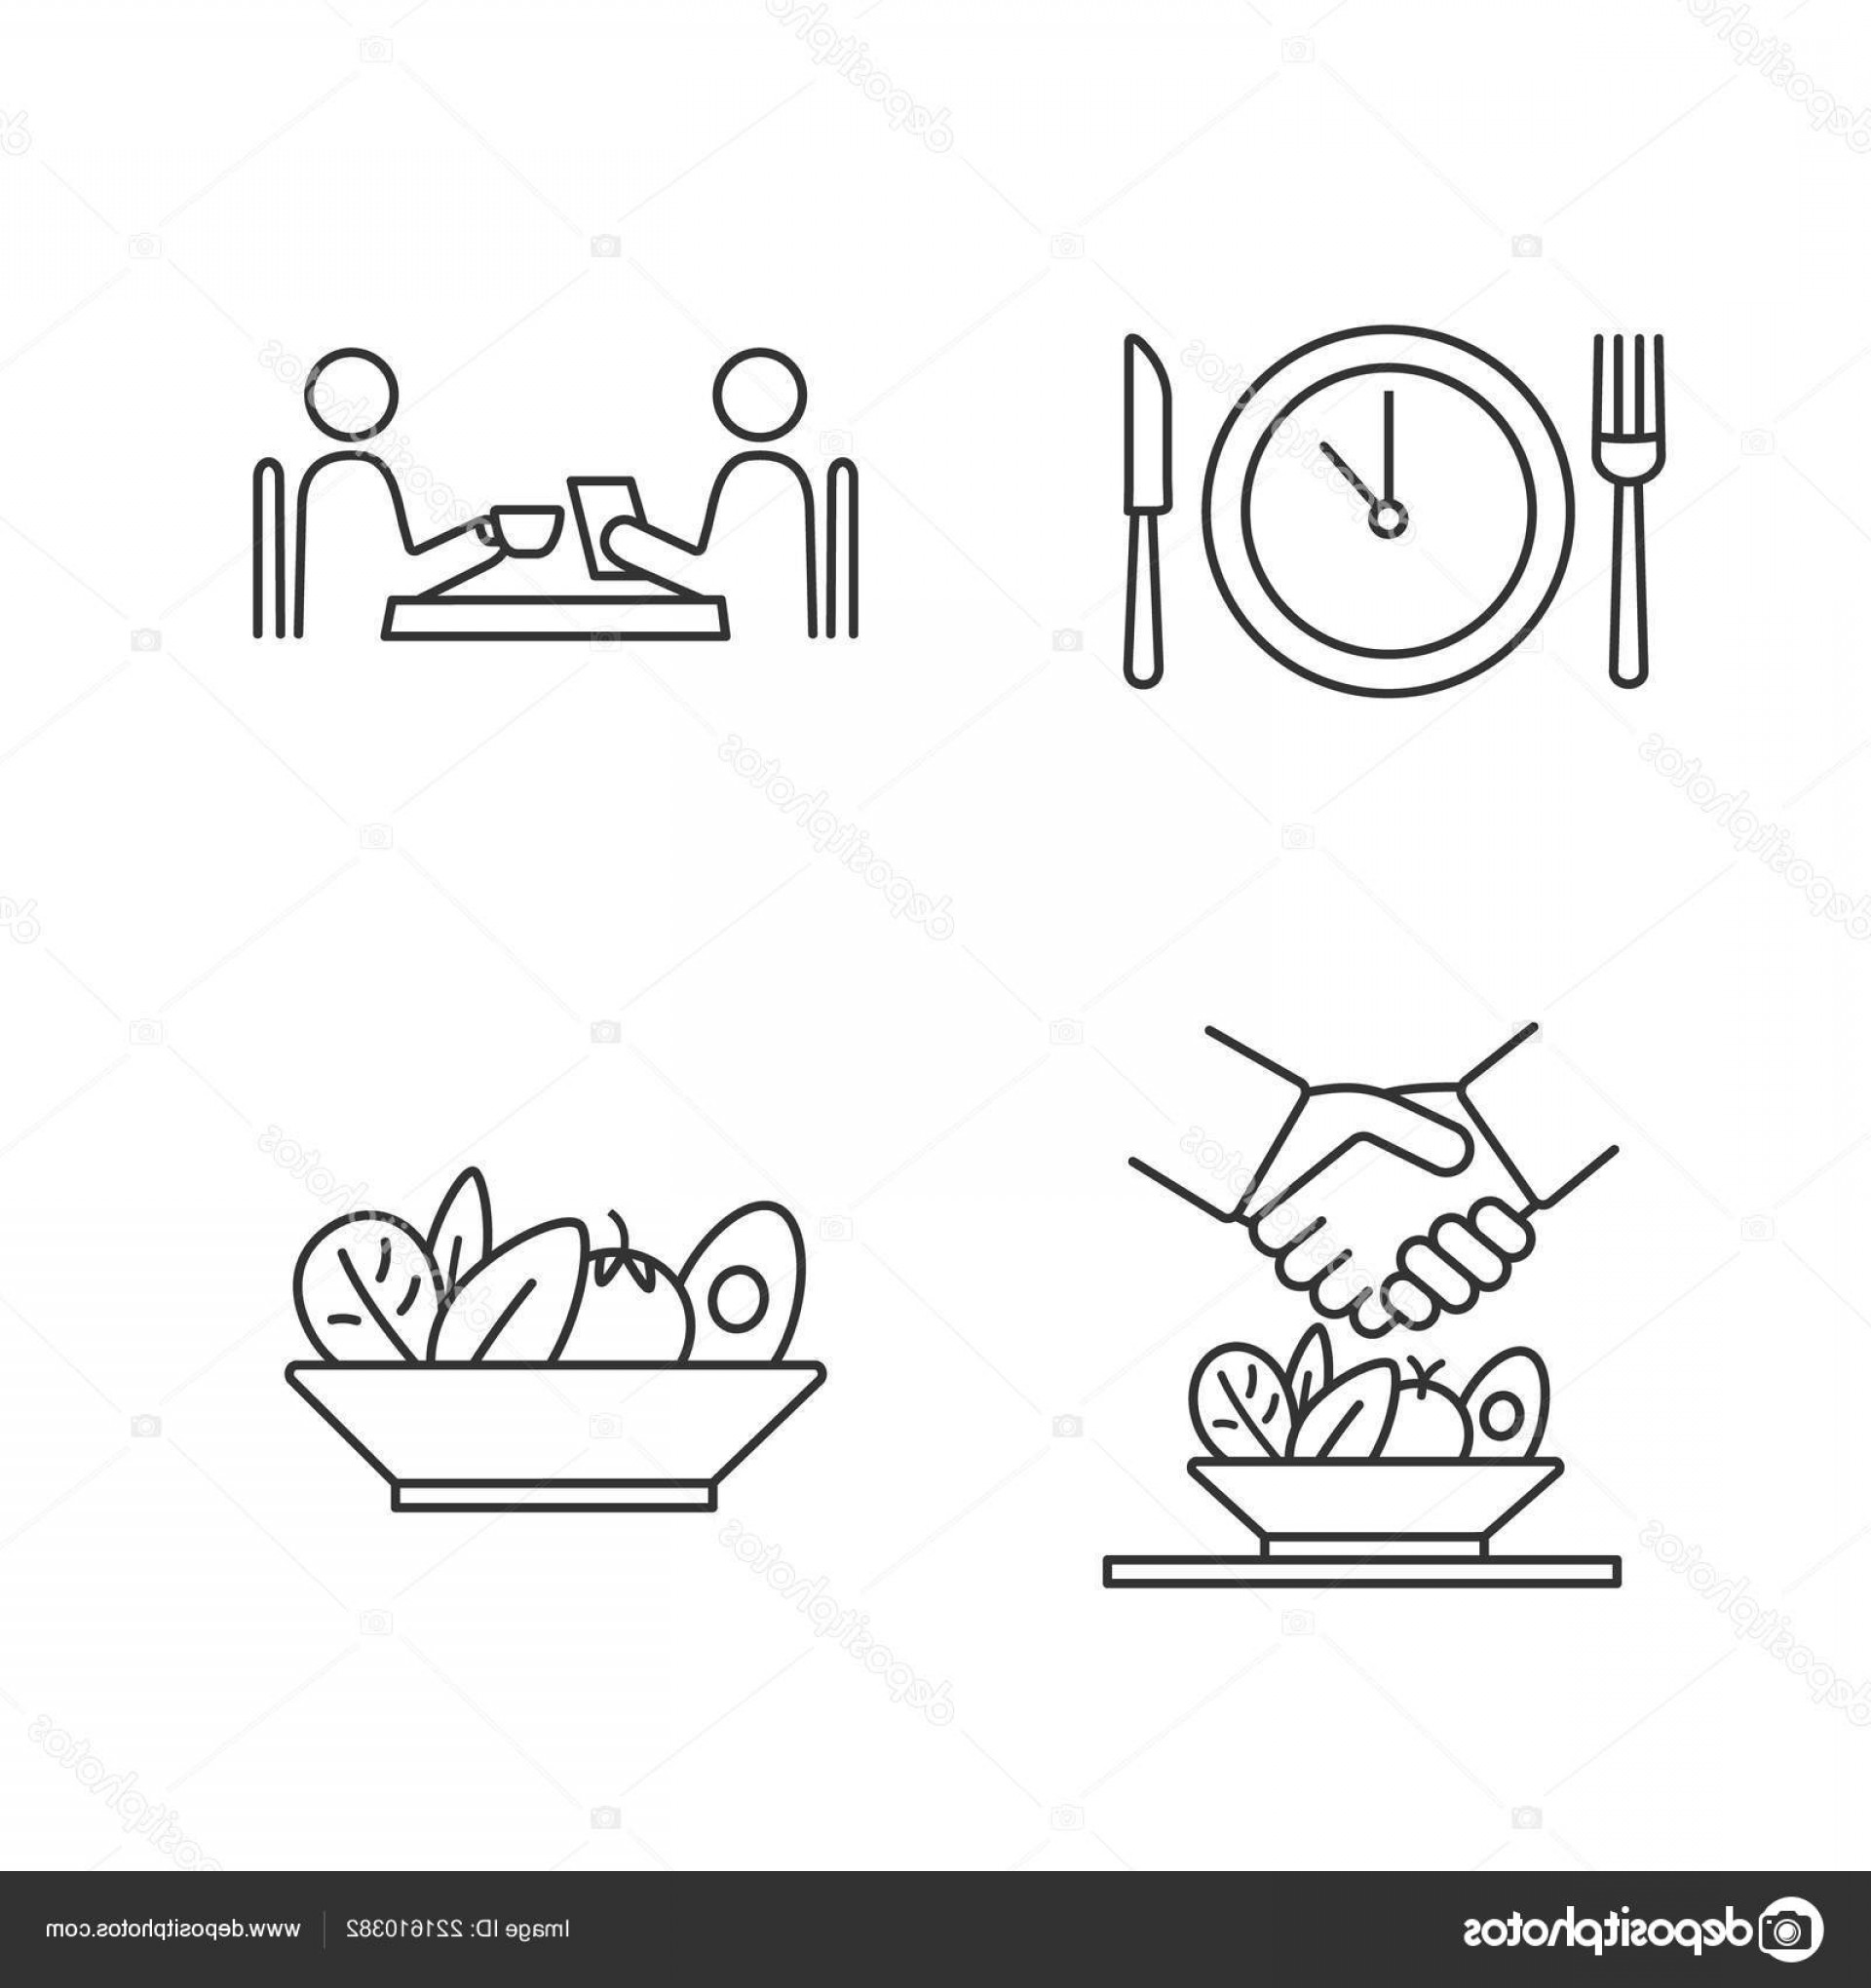 Business Lunch Clip Art Vector: Stock Illustration Business Lunch Linear Icons Set